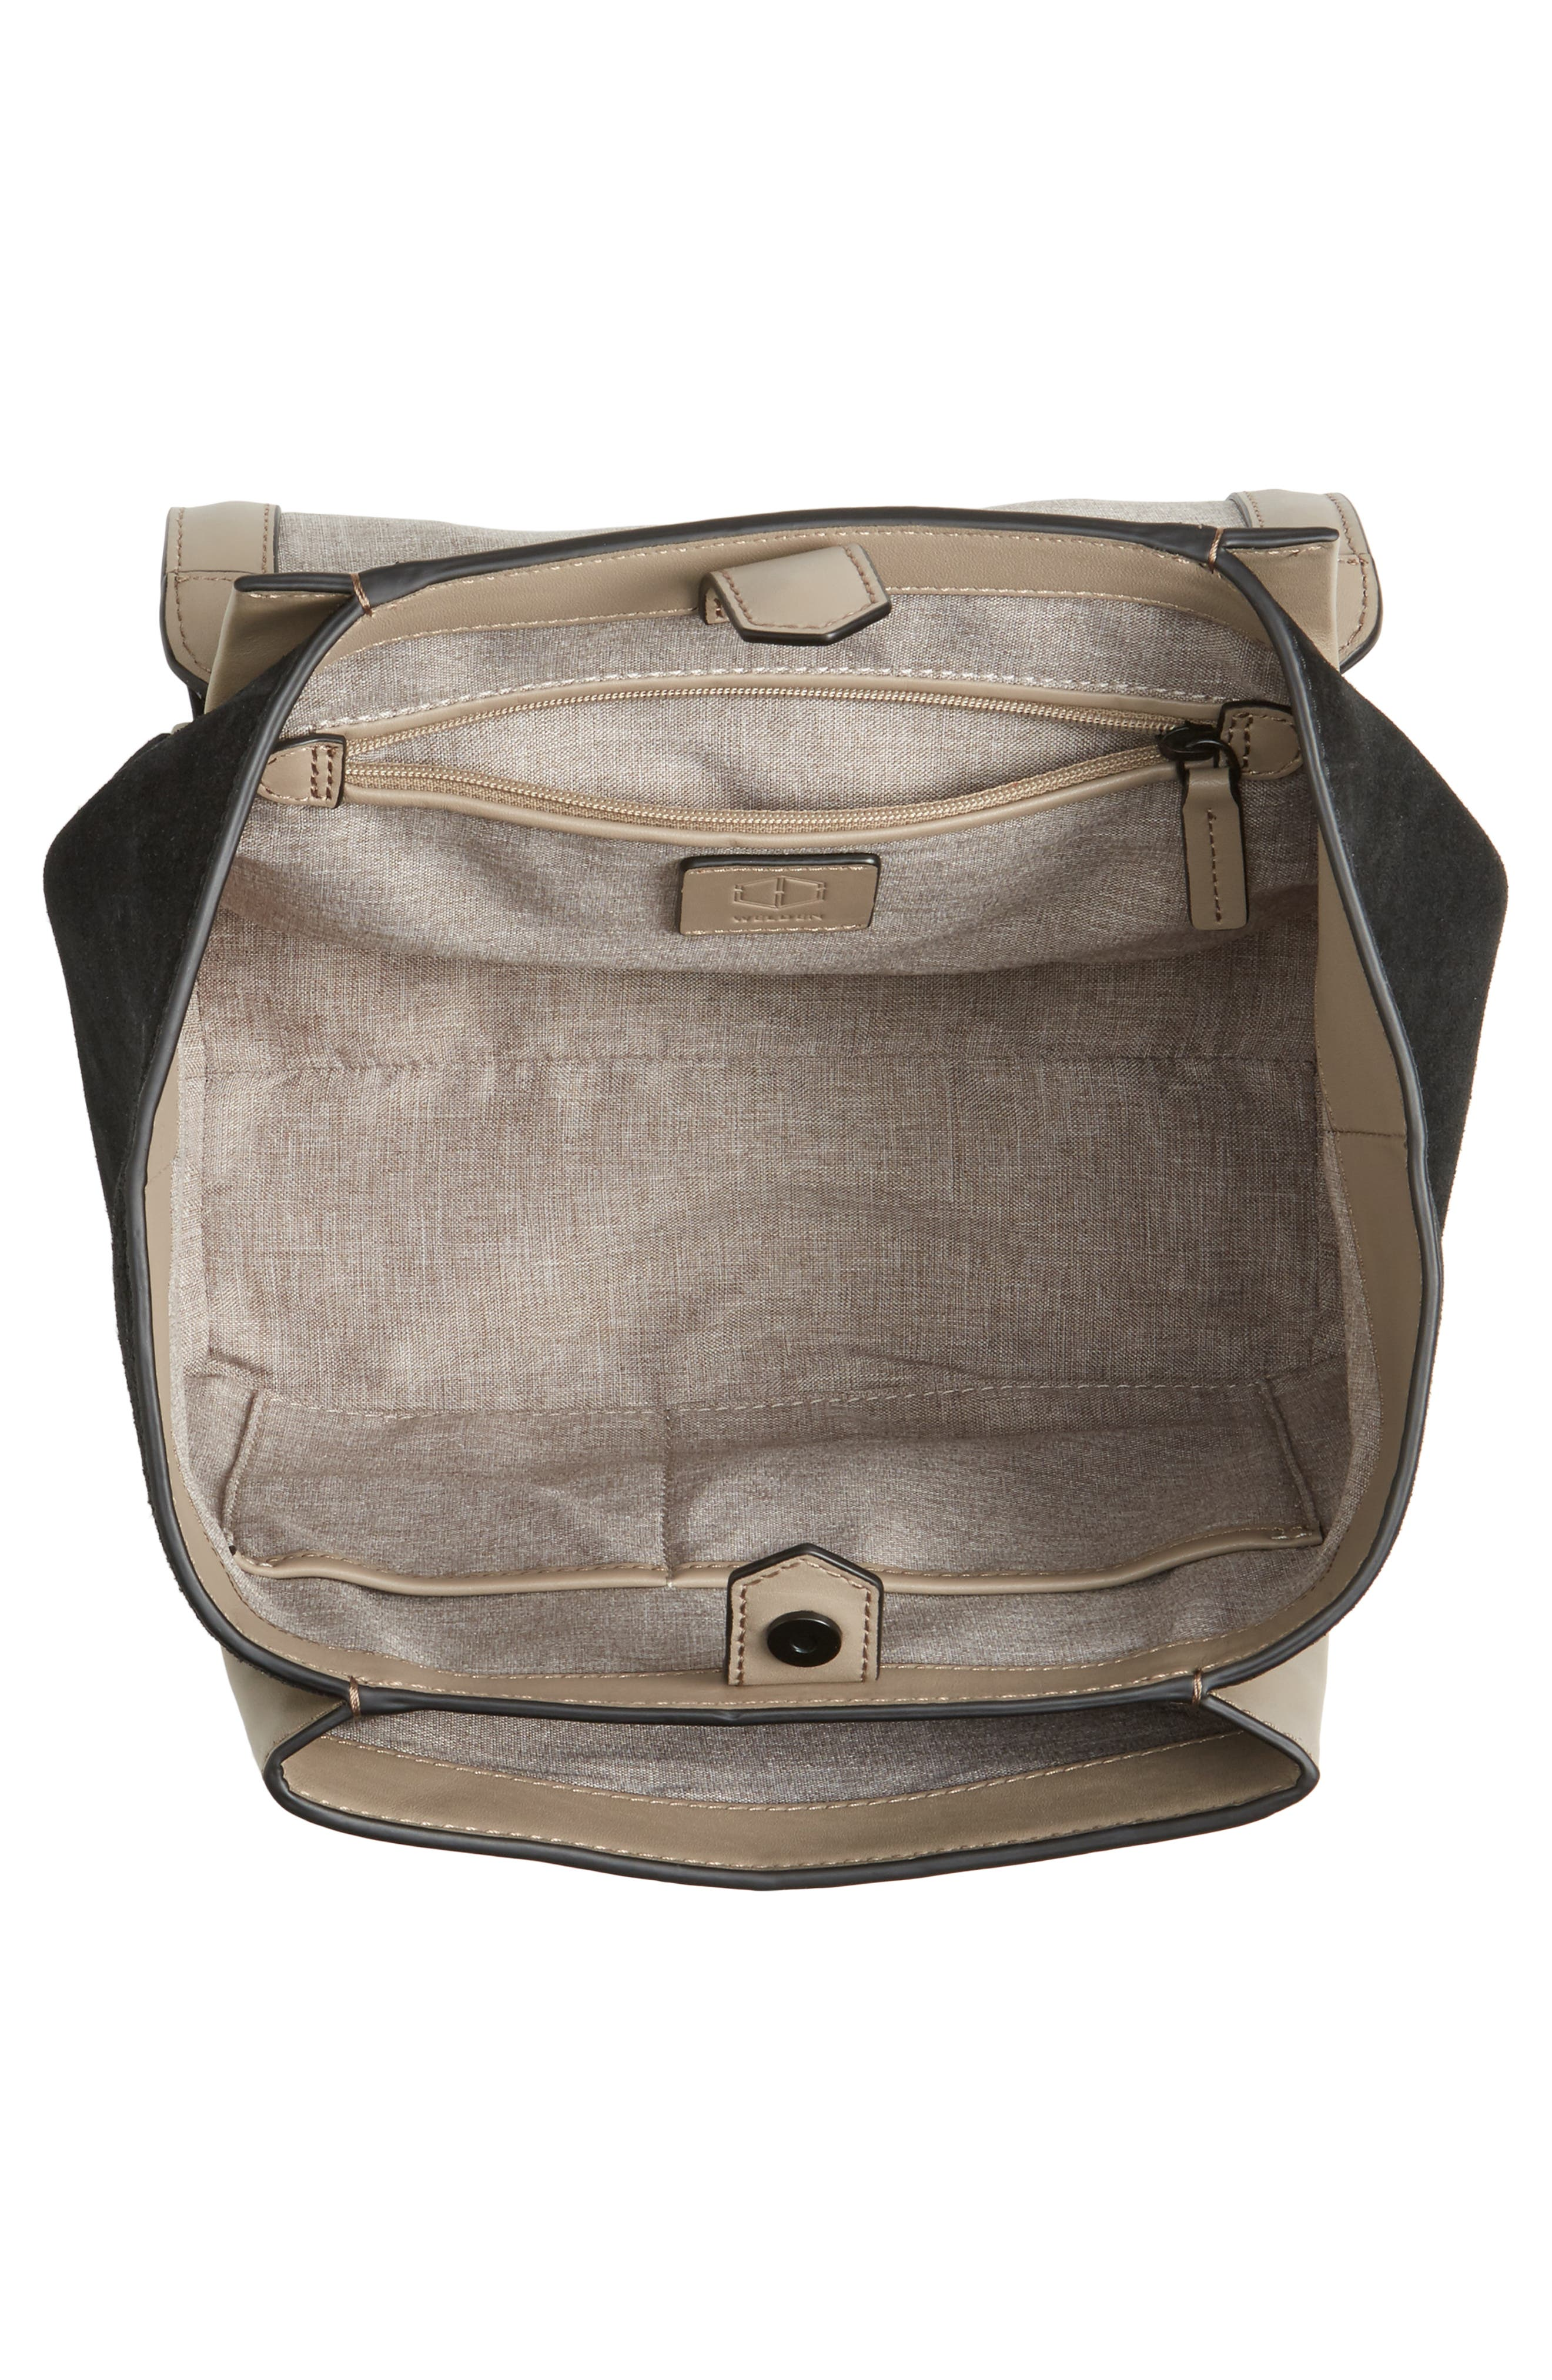 Small Saunter Colorblocked Leather & Suede Top Handle Satchel,                             Alternate thumbnail 3, color,                             Black/ Taupe